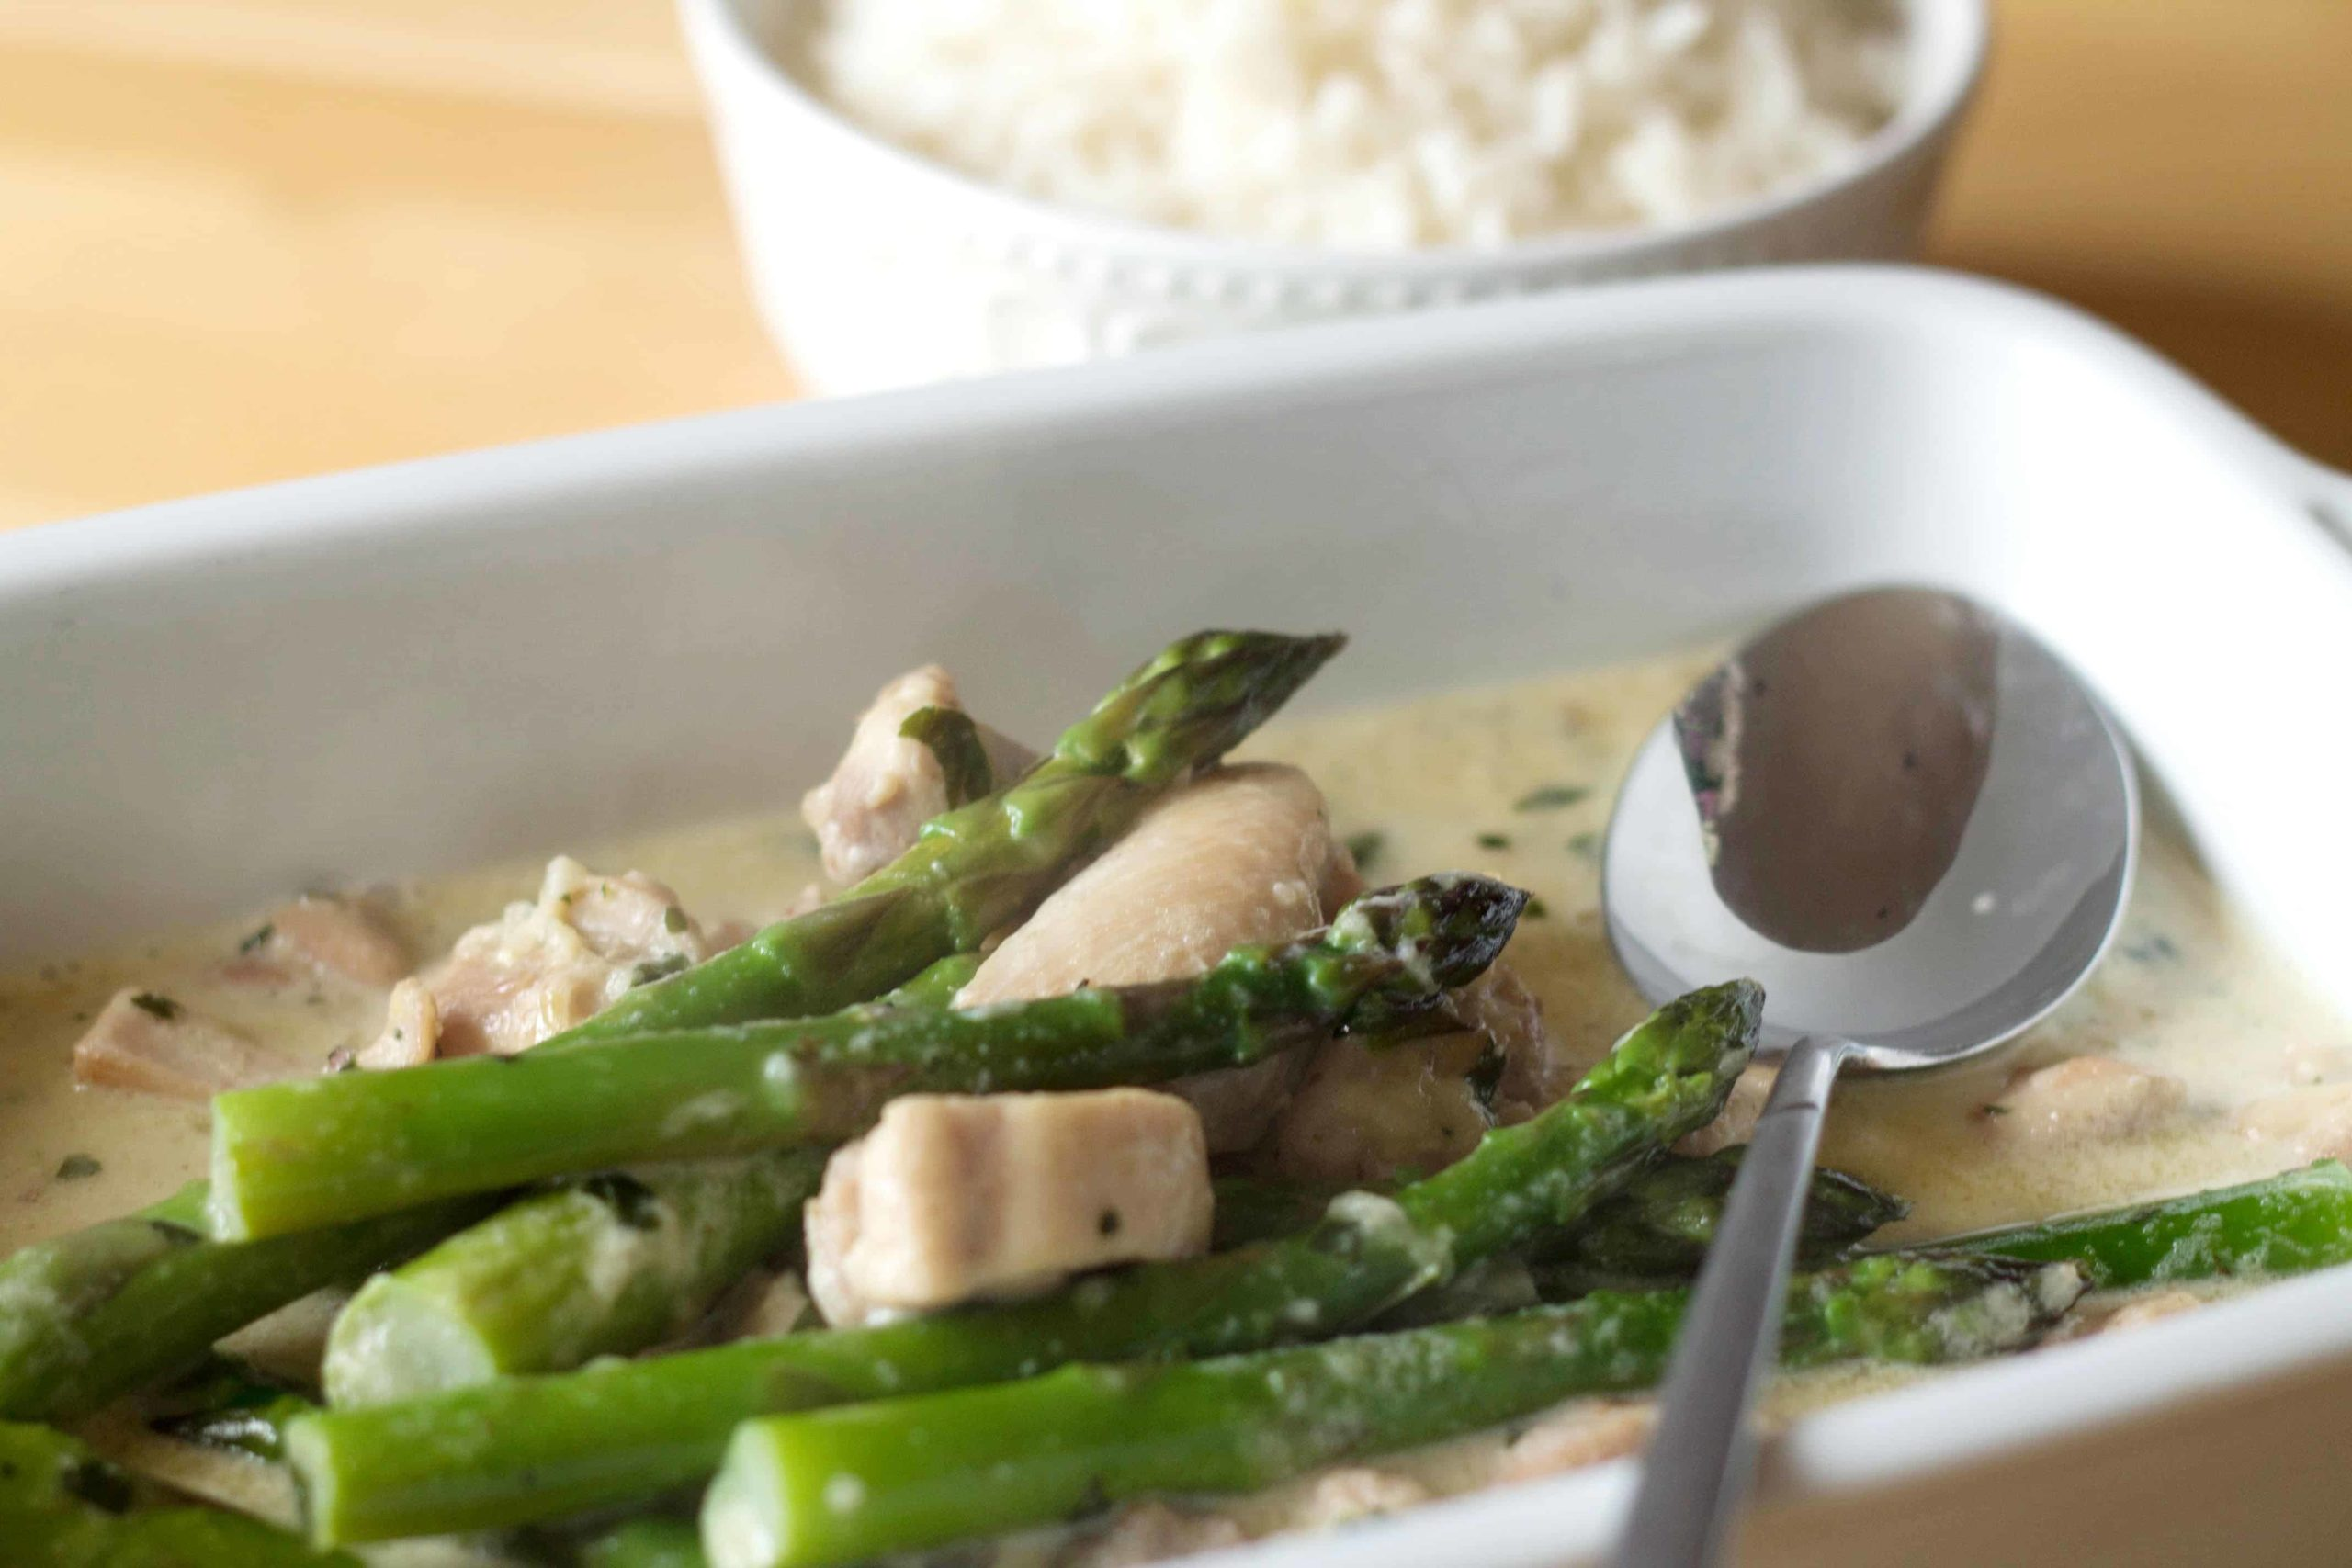 Skinny Creamy Asparagus Chicken in a rectangle serving dish with a spoon and a white bowl of rice in the background